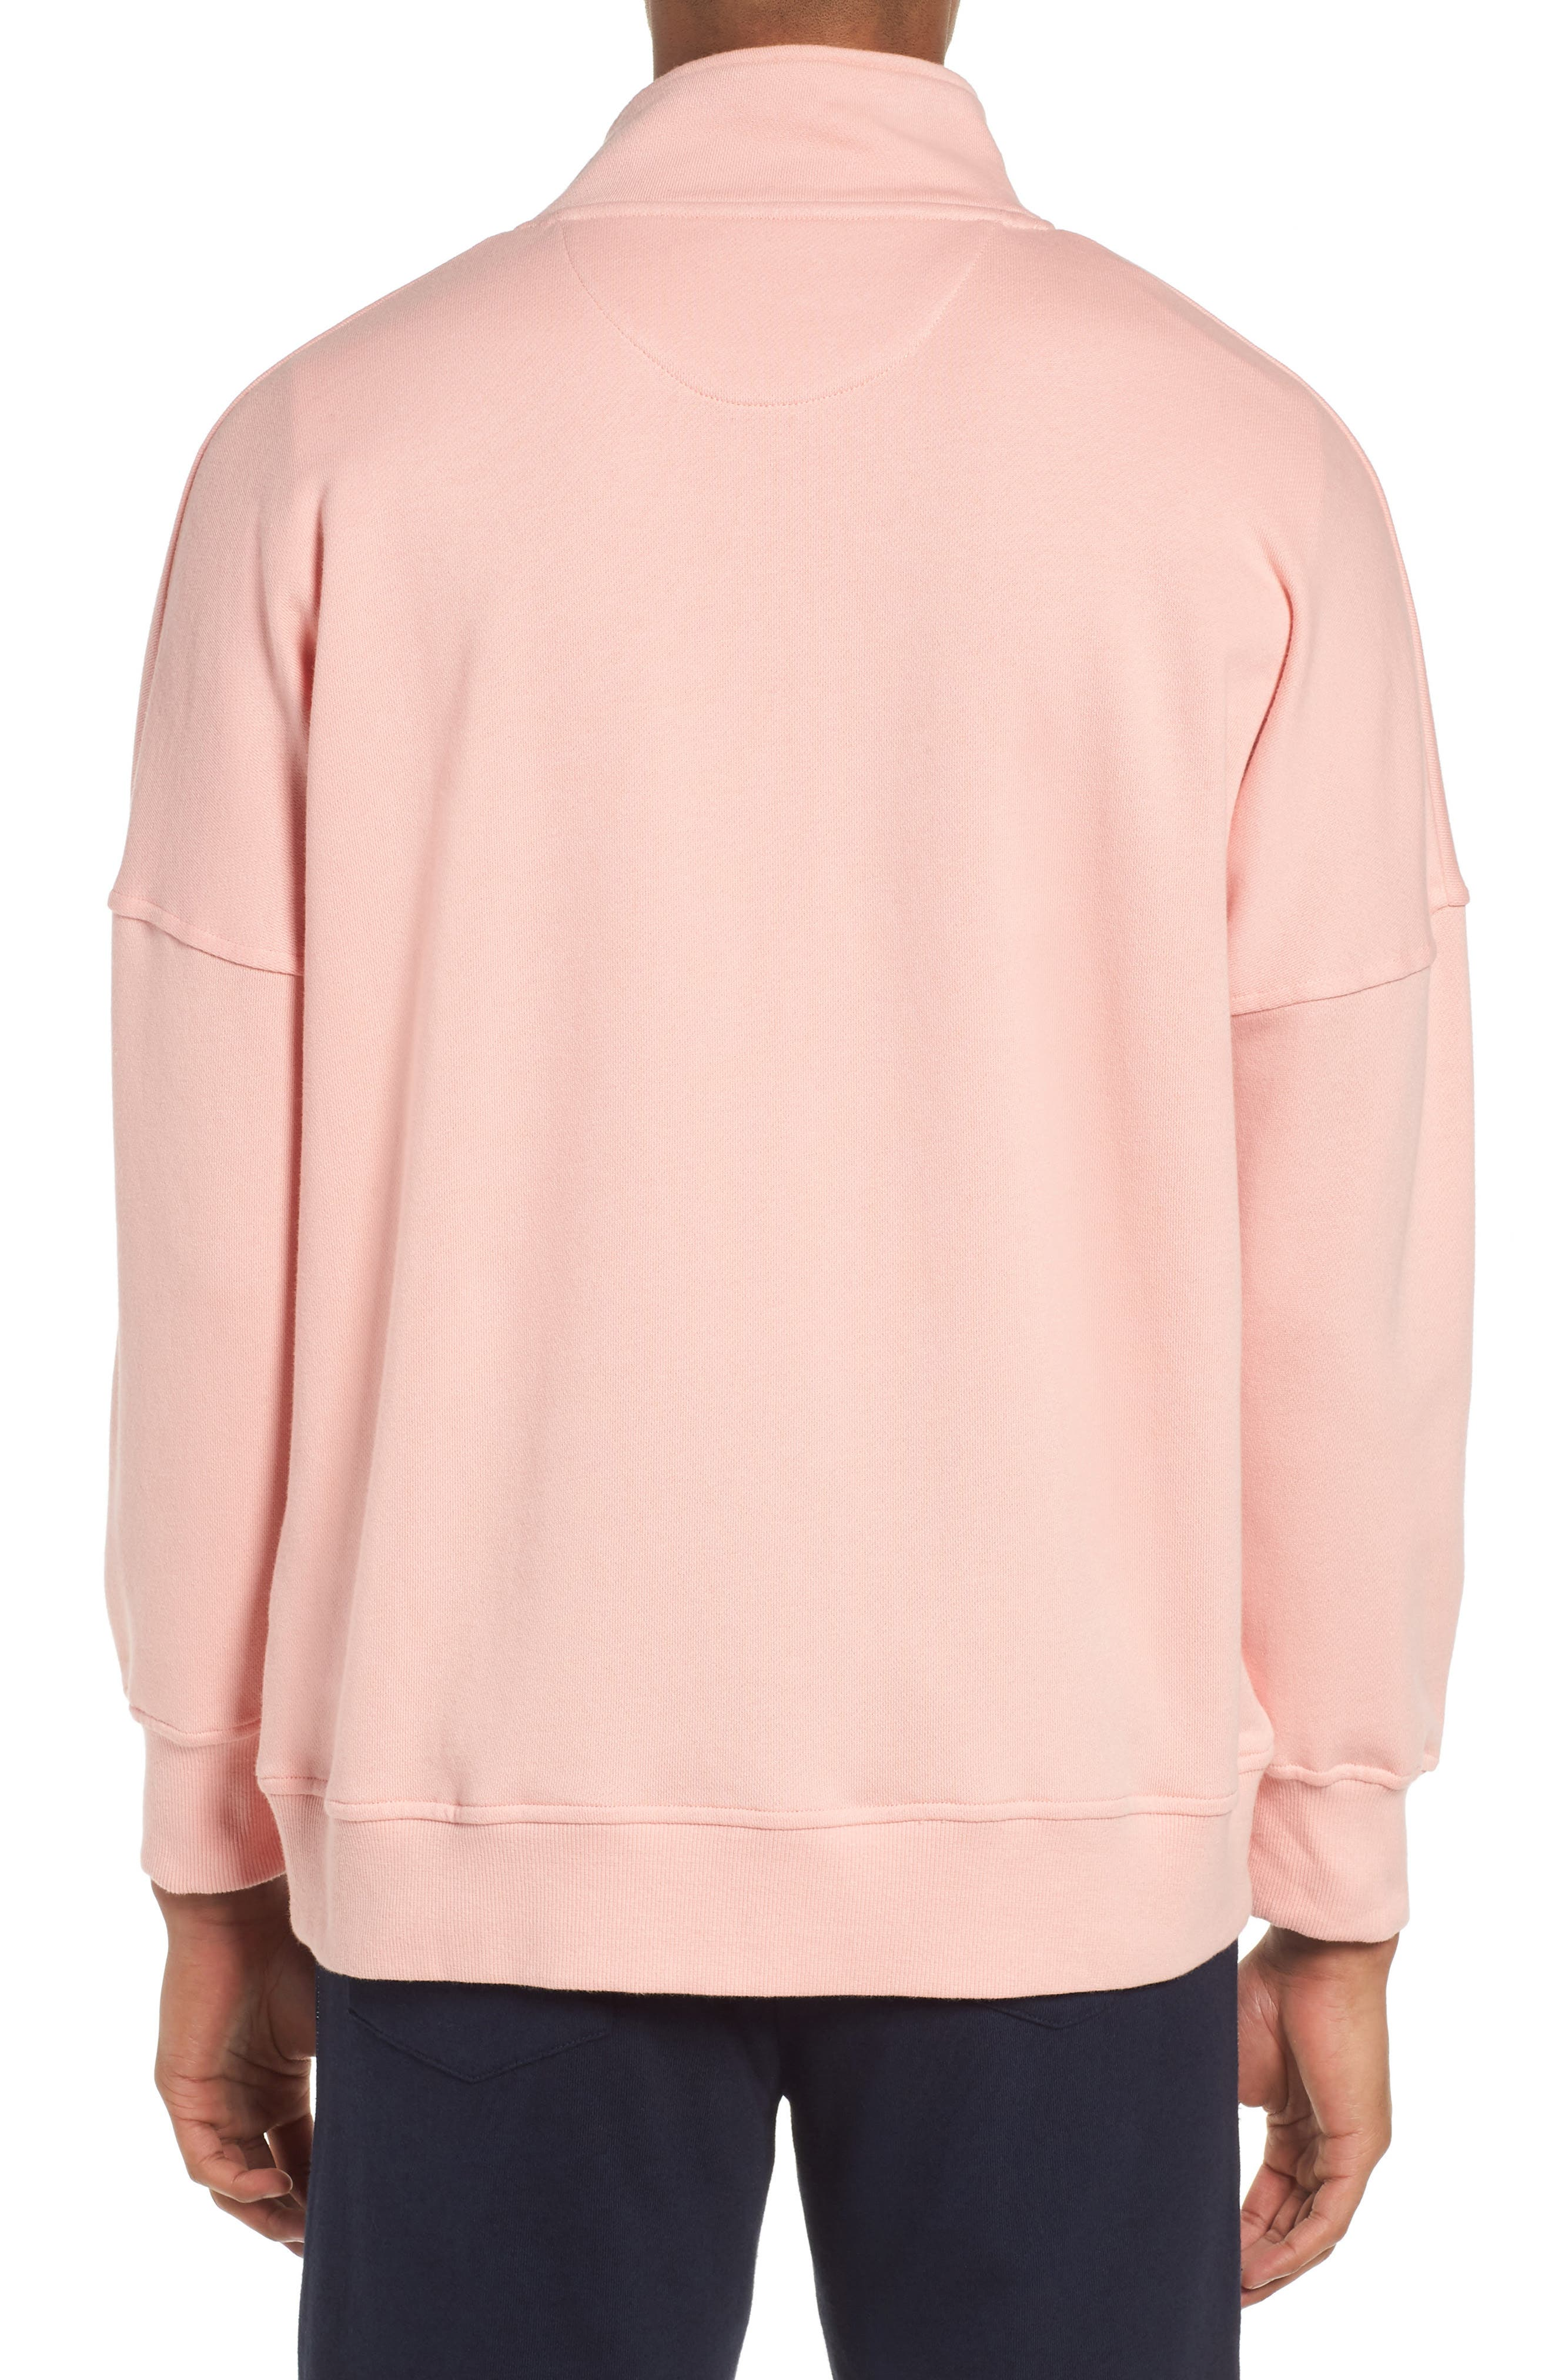 Hosmer Sweatshirt,                             Alternate thumbnail 2, color,                             Orchid